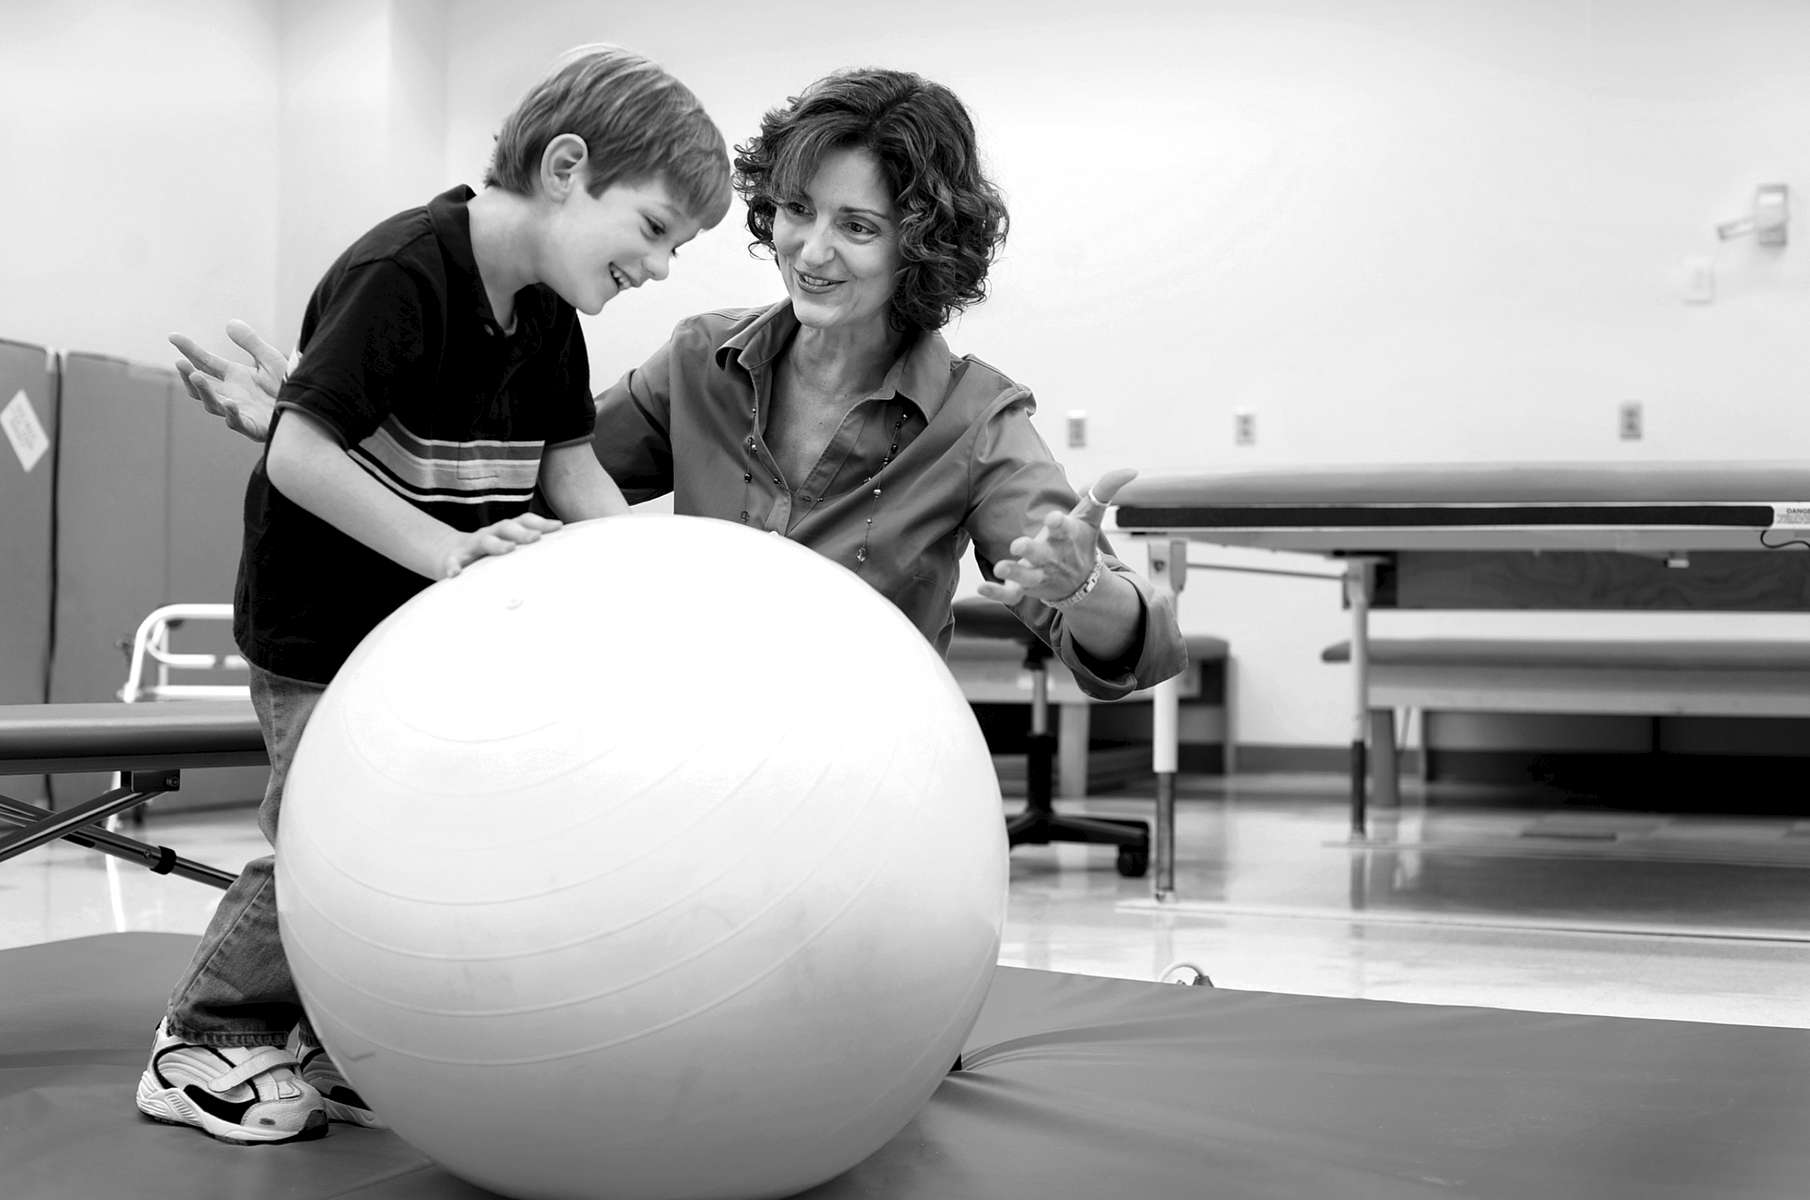 Paula DiBiasio, an assistant professor of physical therapy education at Elon University, works with a client in an on-campus lab.